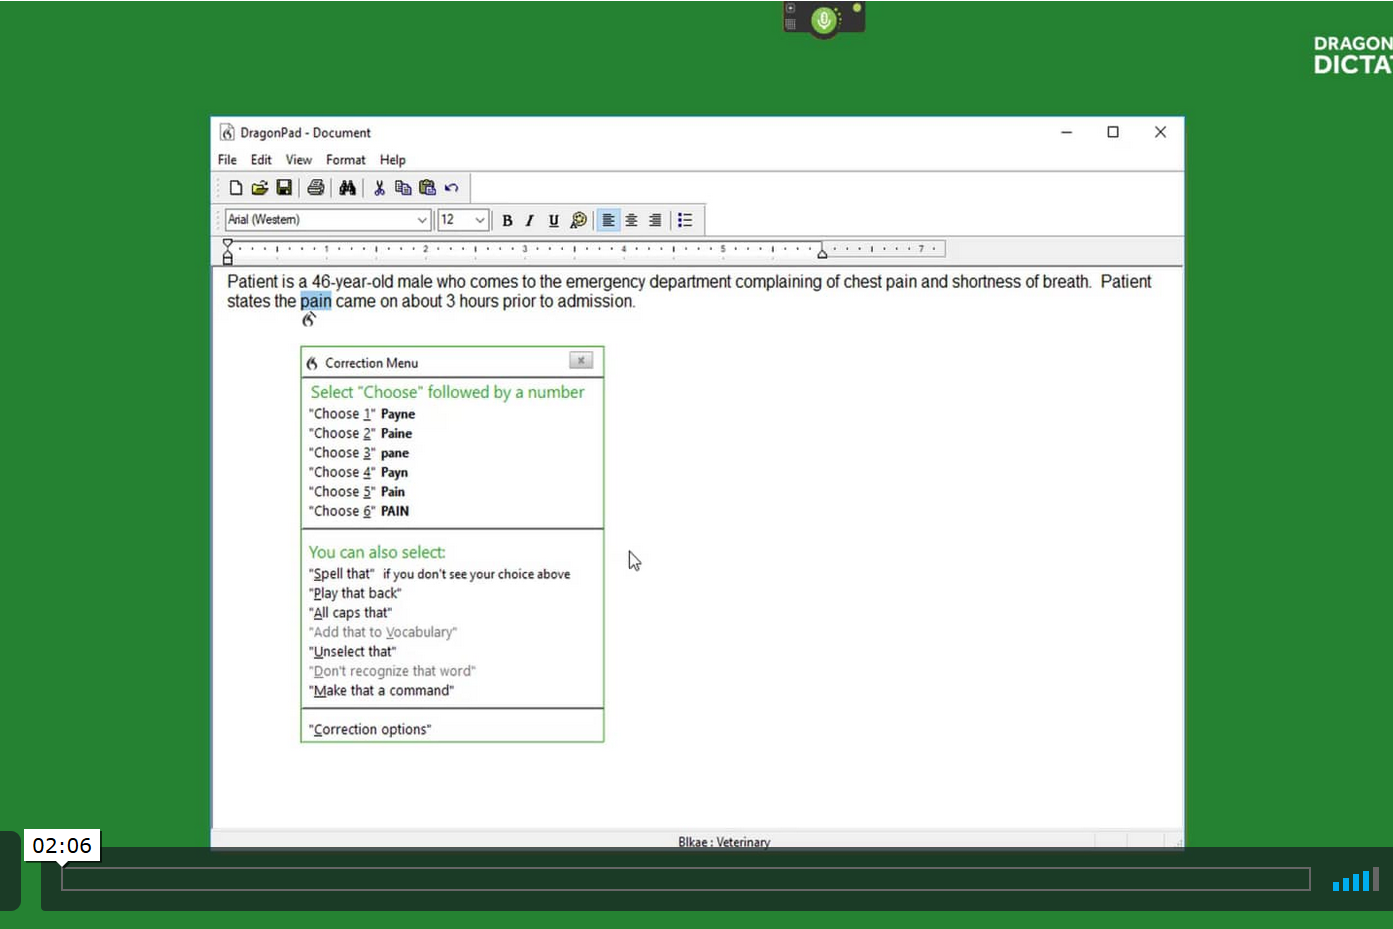 TUTORIAL #3: BASIC FORMATTING COMMANDS   This tutorial goes over some of the basic and most used text formatting commands to help get you started using your Dragon Medical software.